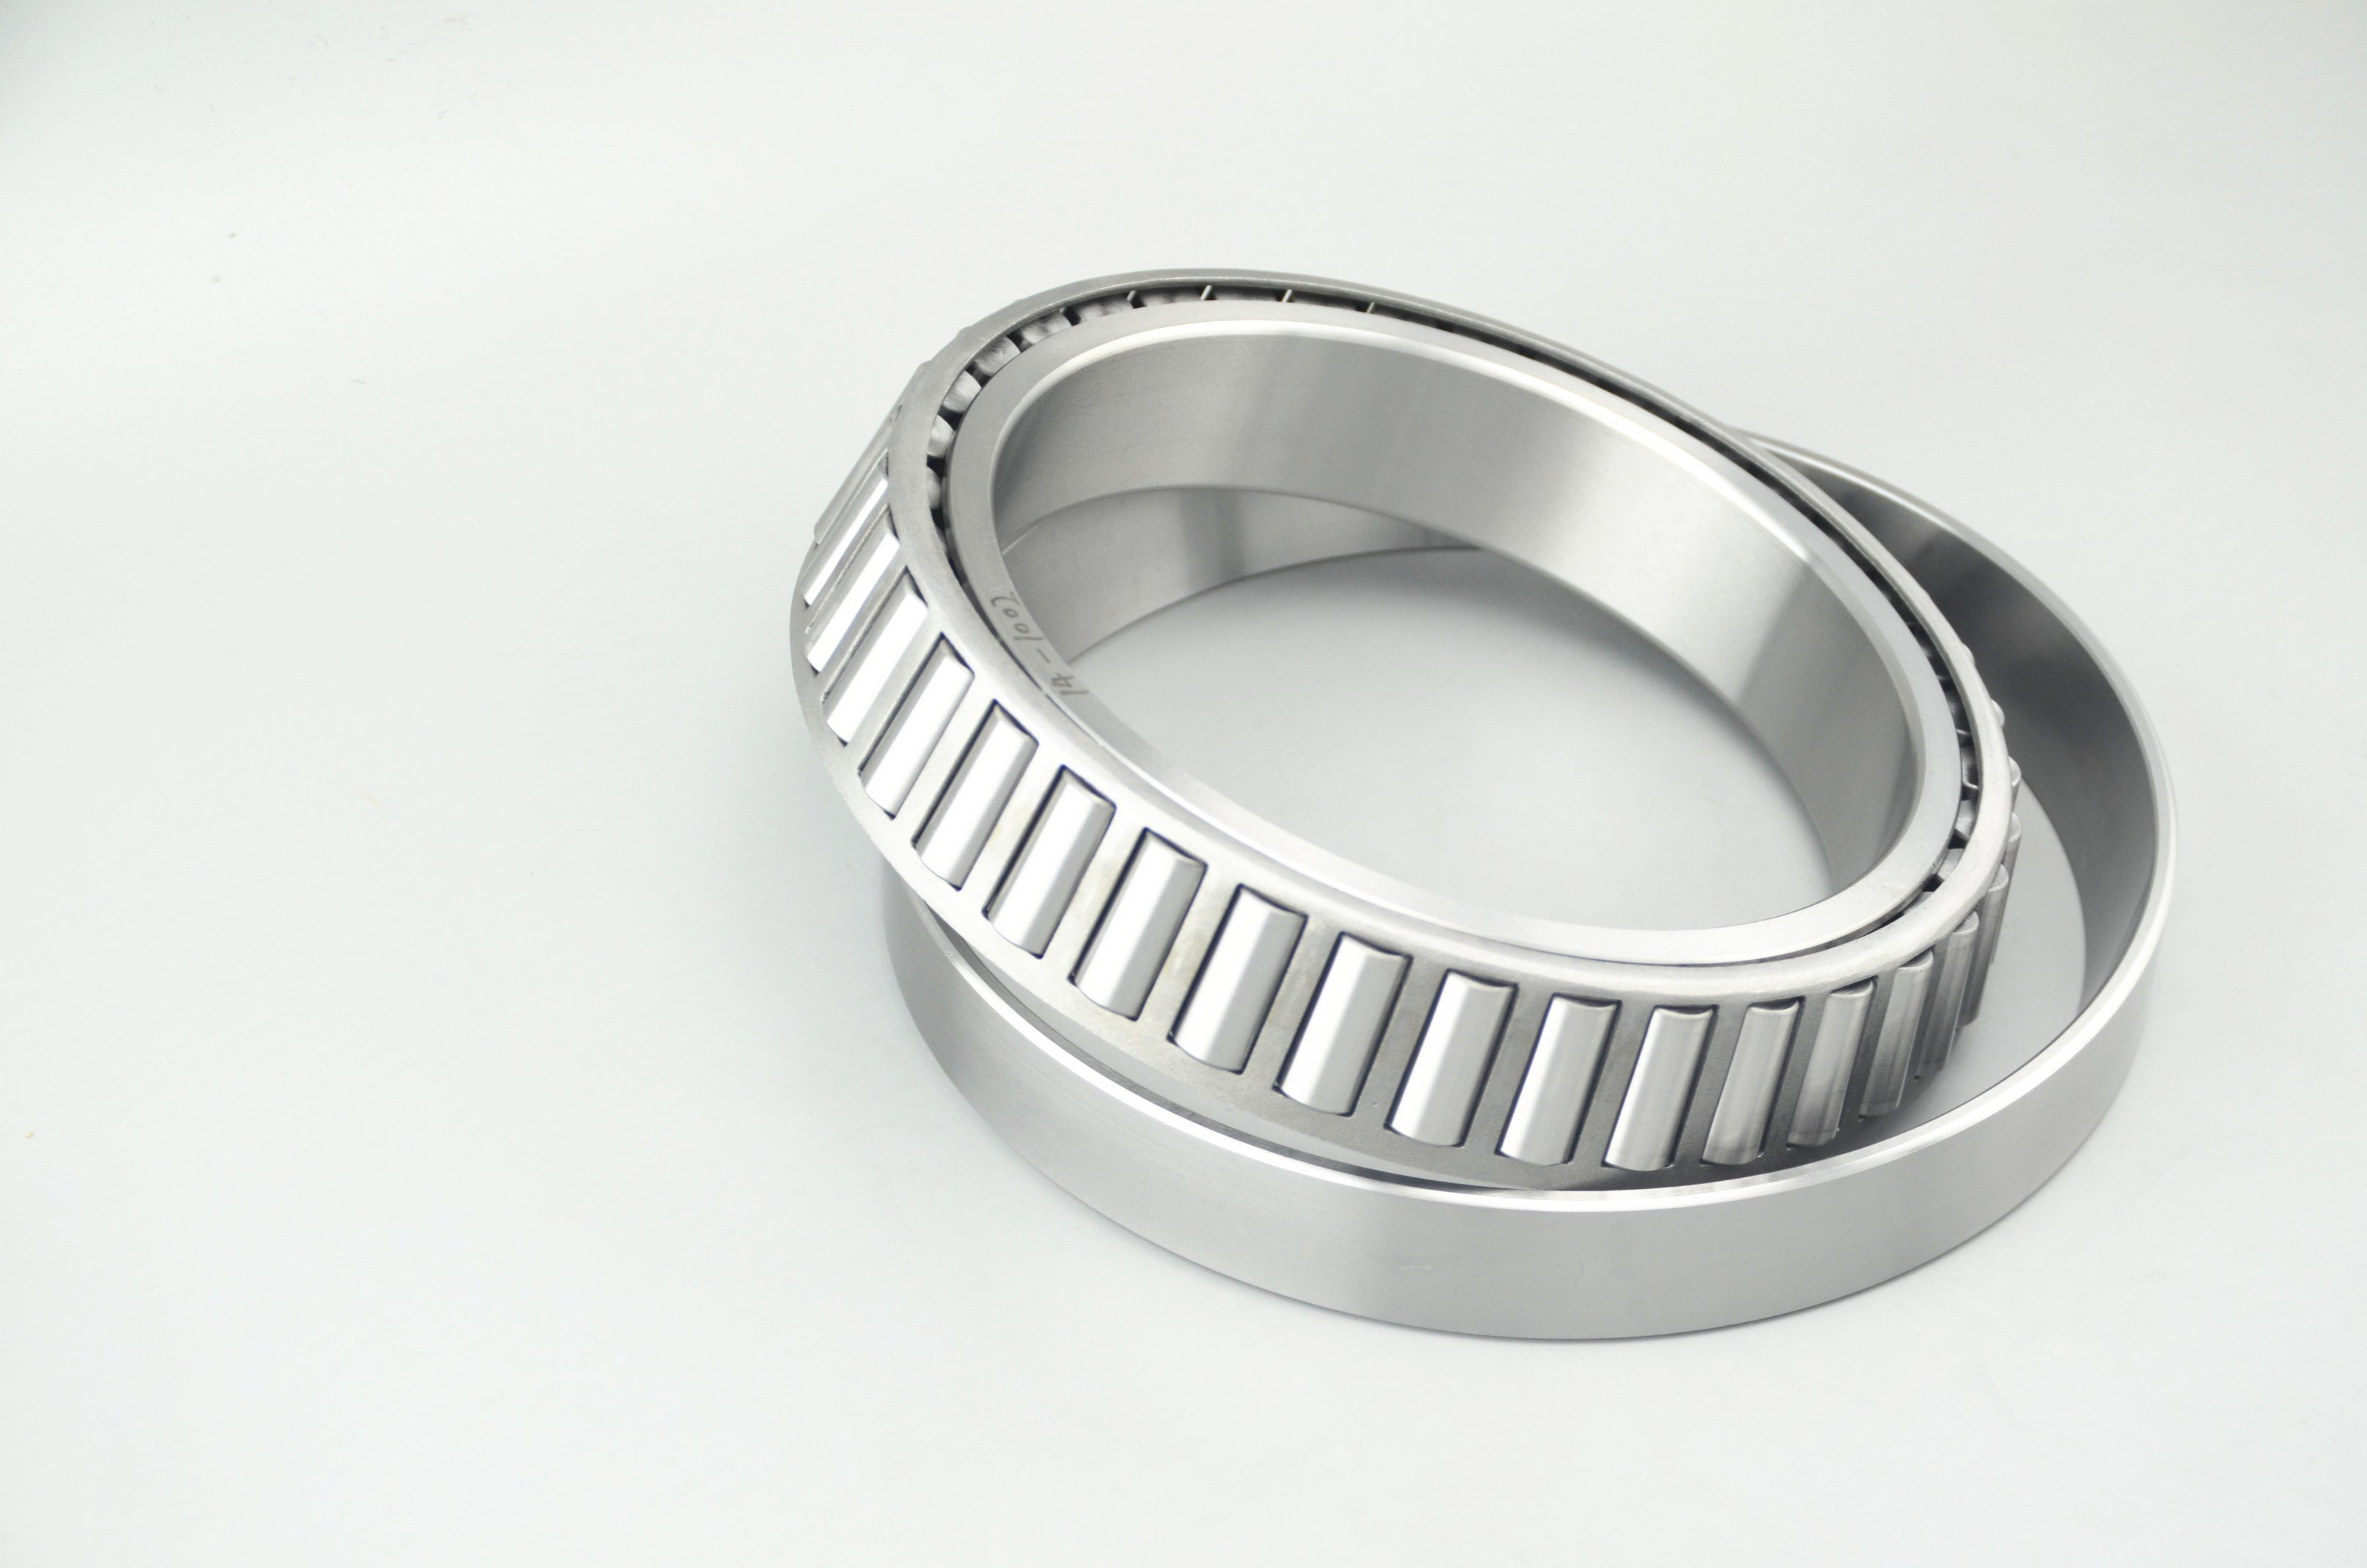 Zys Metric Inch Auto Parts 30 Series Tapered Roller Bearings for Automobile and Rolling Mill Industry